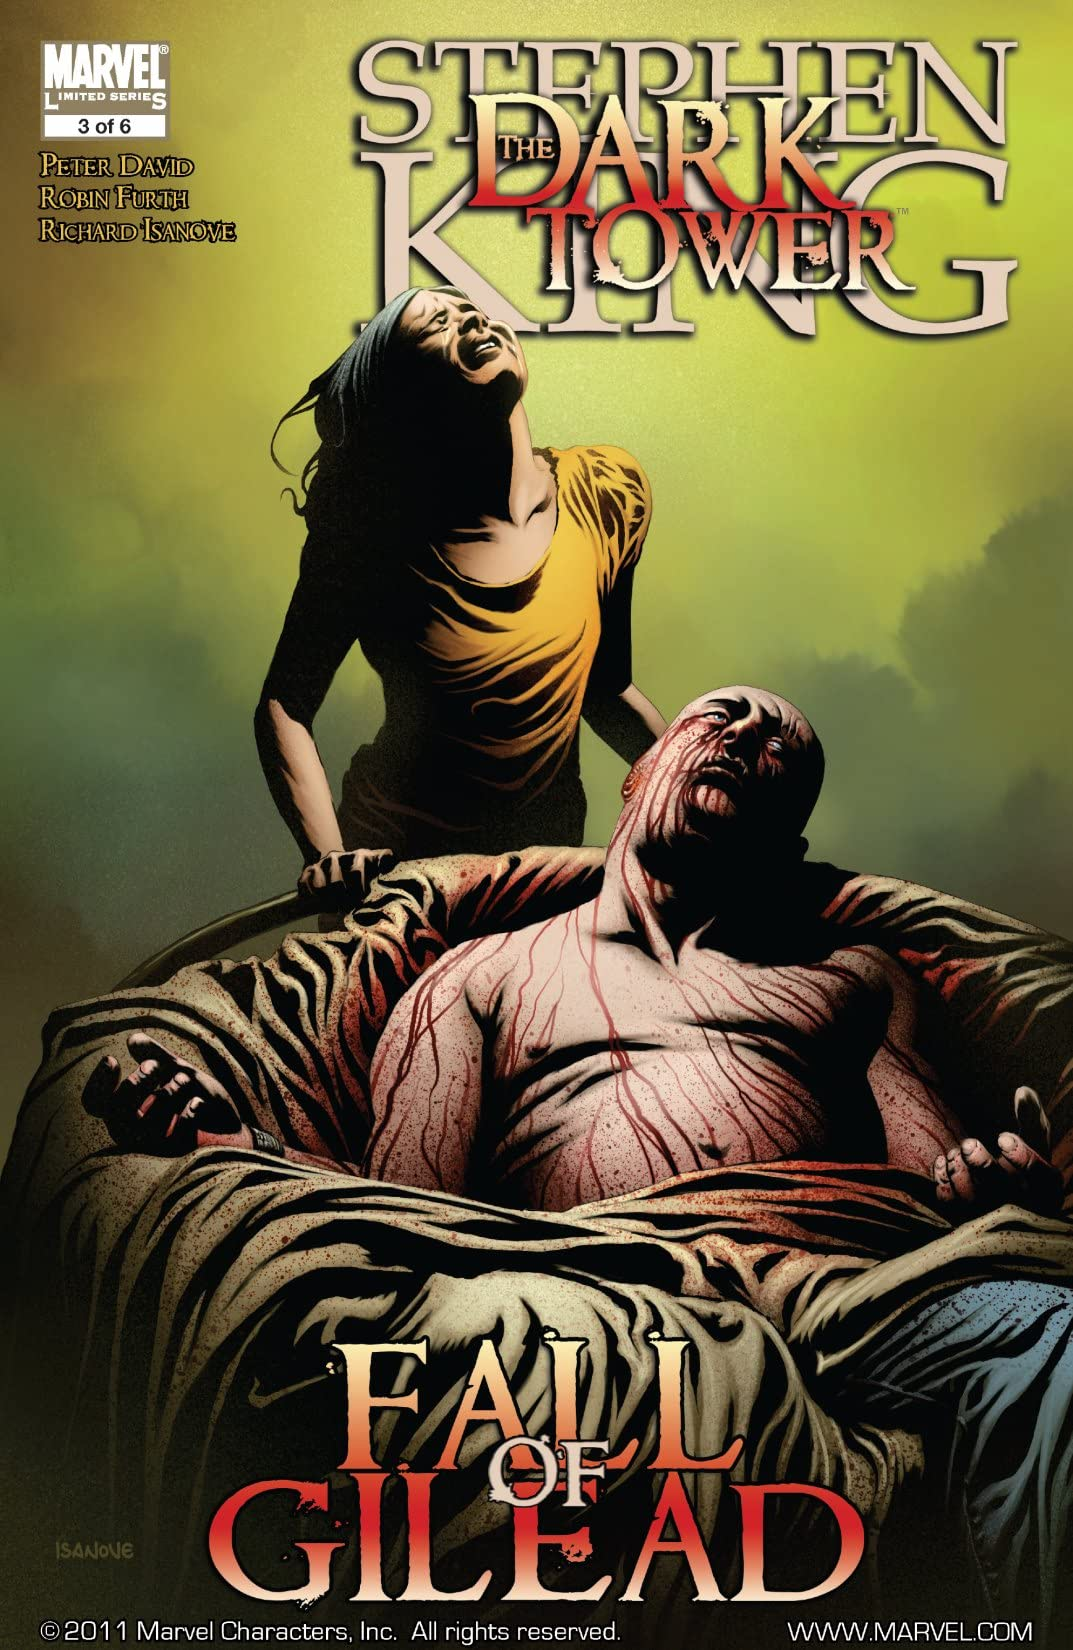 Dark Tower: The Fall of Gilead #3 (of 6)